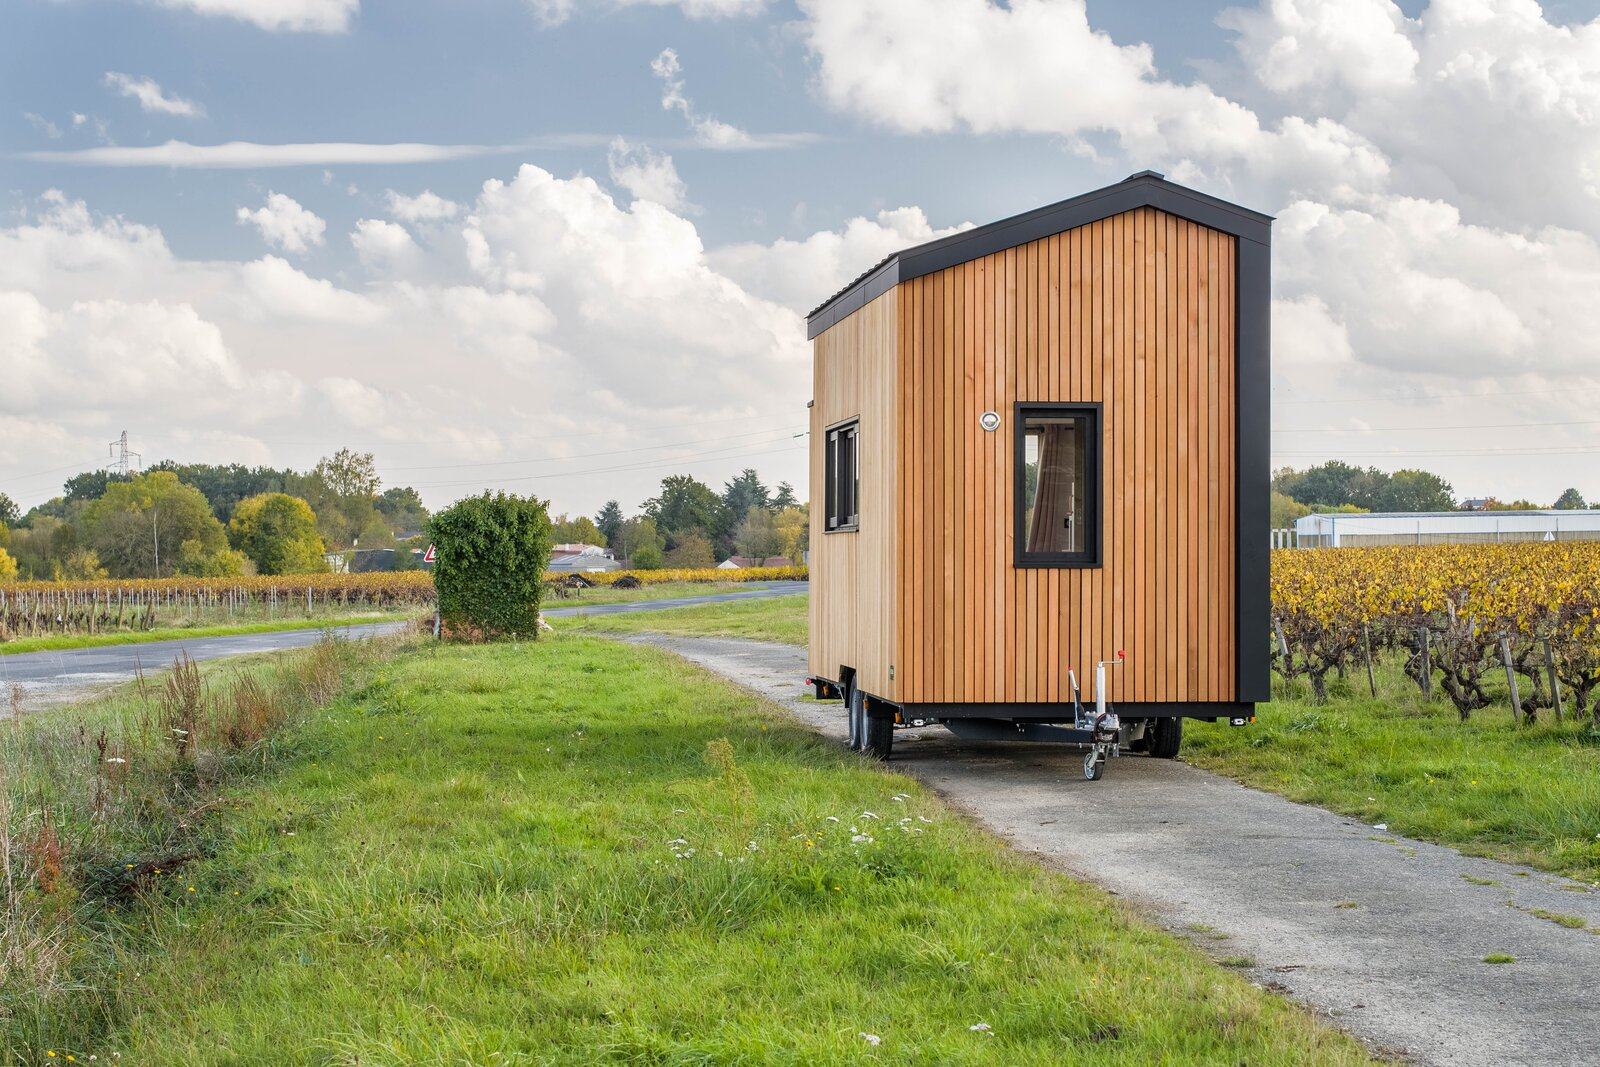 Ala Köl by Baluchon tiny home clad in strips of cedar and black aluminum